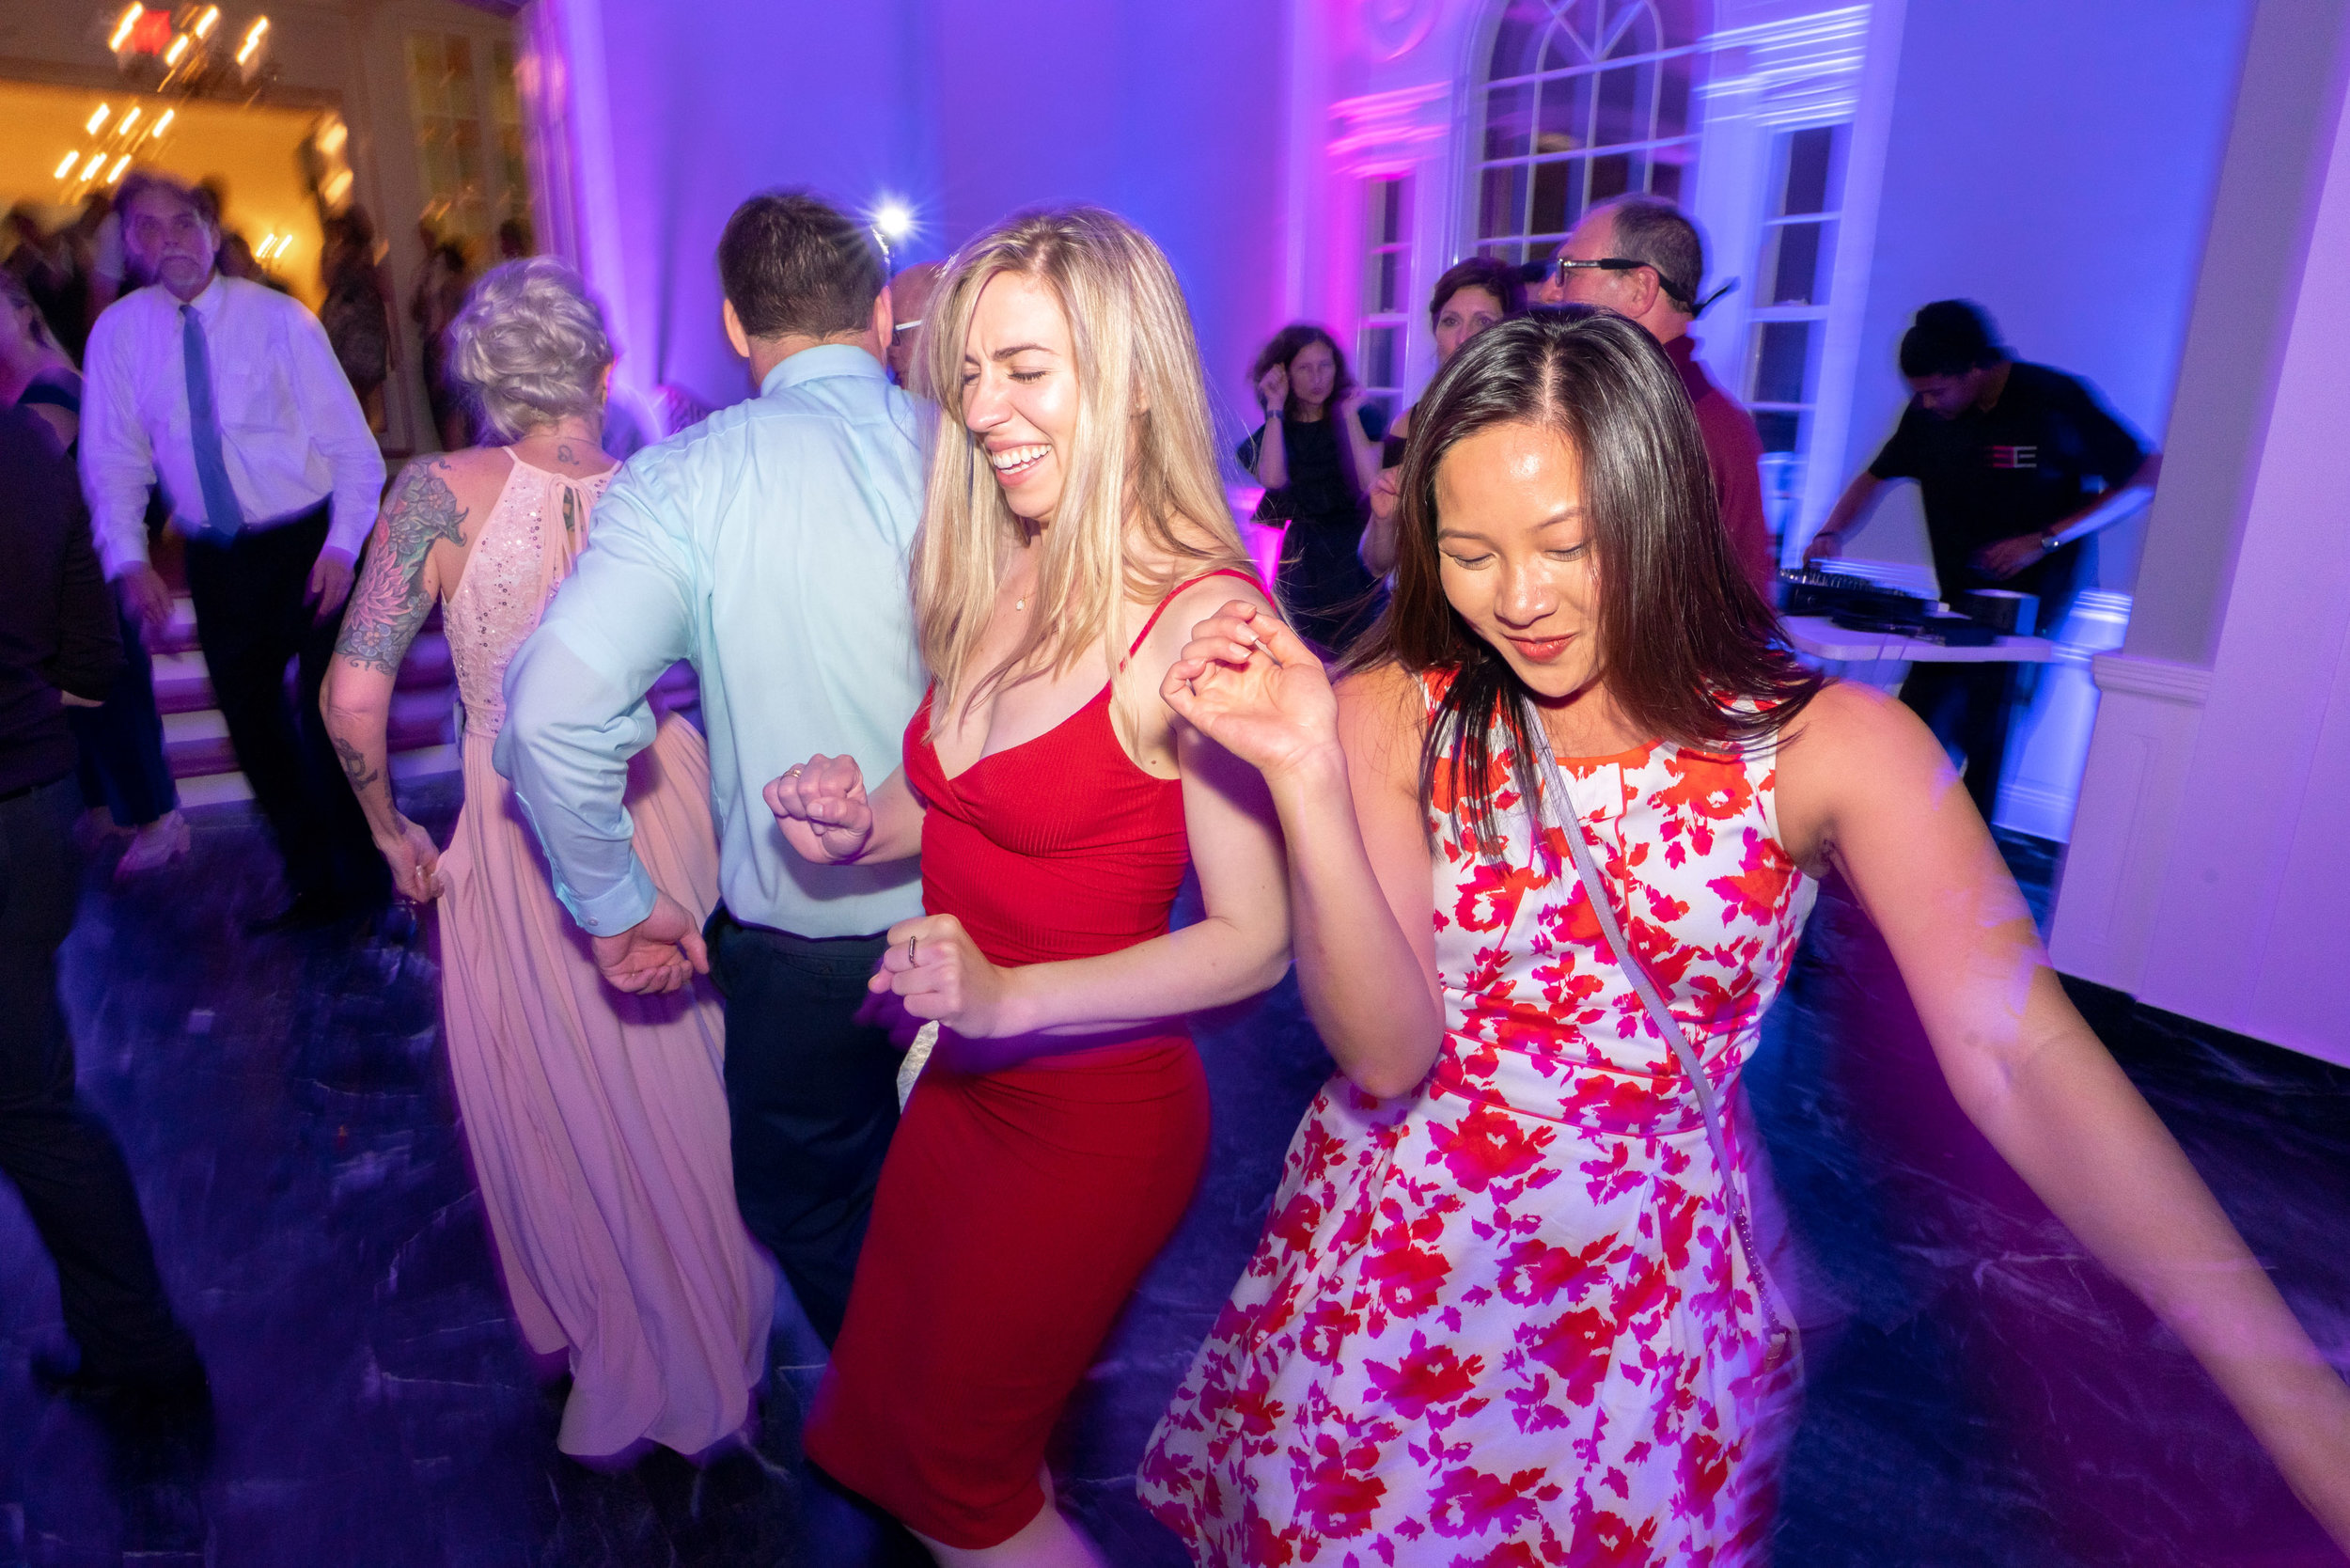 Guests dancing at Glenview Mansion during wedding reception in the ballroom